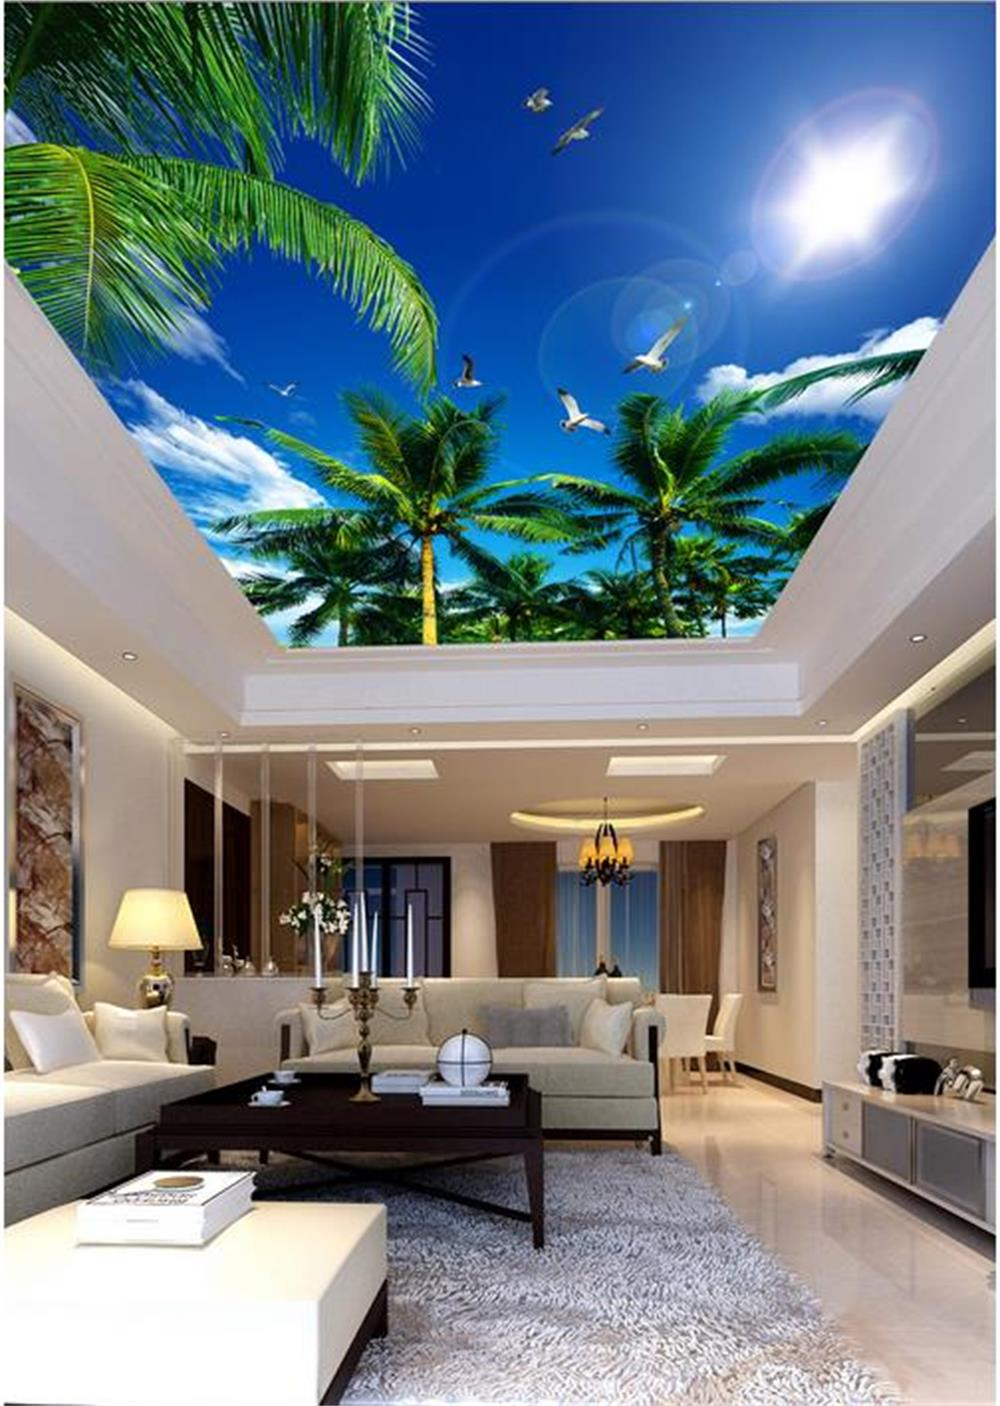 3D wallpaper ceiling/custom photo wall paper/Coconut trees, blue sky seagull/Bedroom/KTV/Hotel/bar/living room/Children room custom ceiling wallpaper blue sky and white clouds murals for the living room bedroom ceiling background wall mural wallpaper